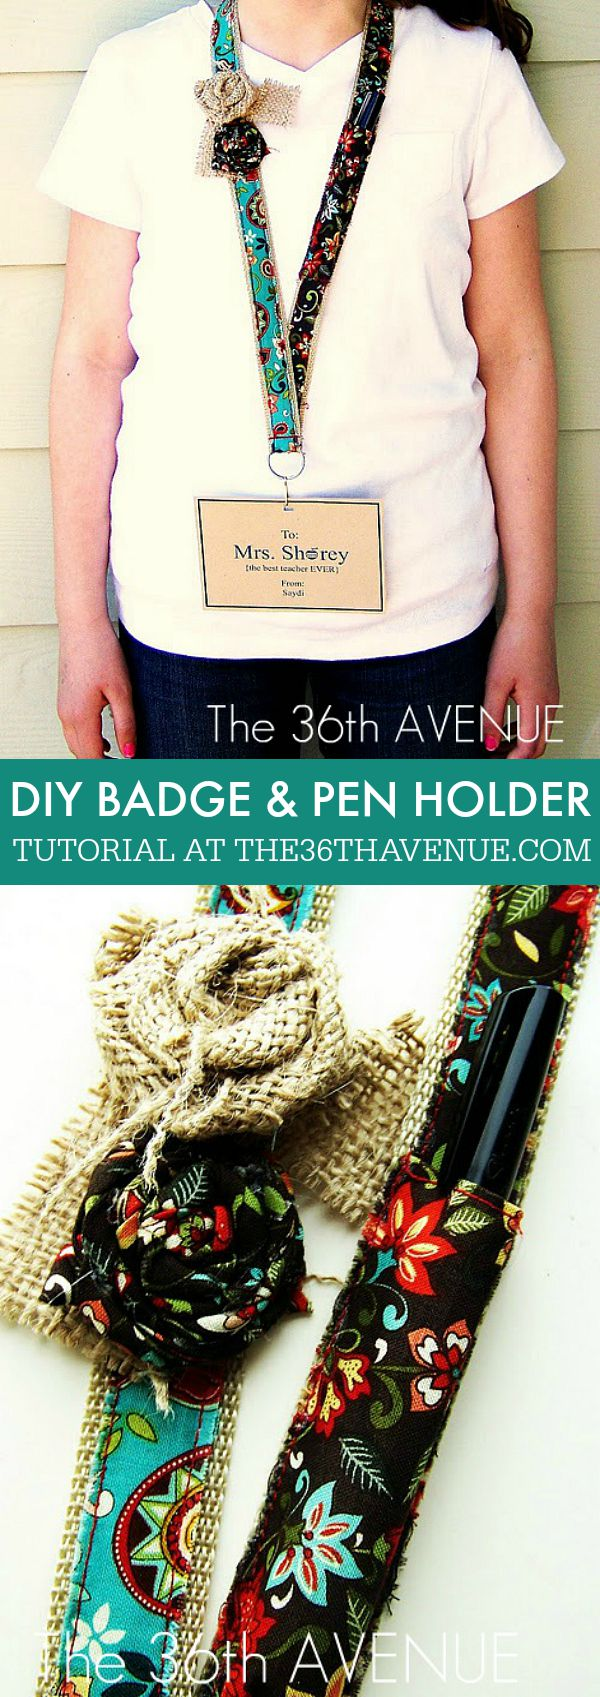 Handmade Gifts - DIY Badge Holder... Perfect for Teacher Appreciation Gifts! PIN IT NOW AND MAKE IT LATER!